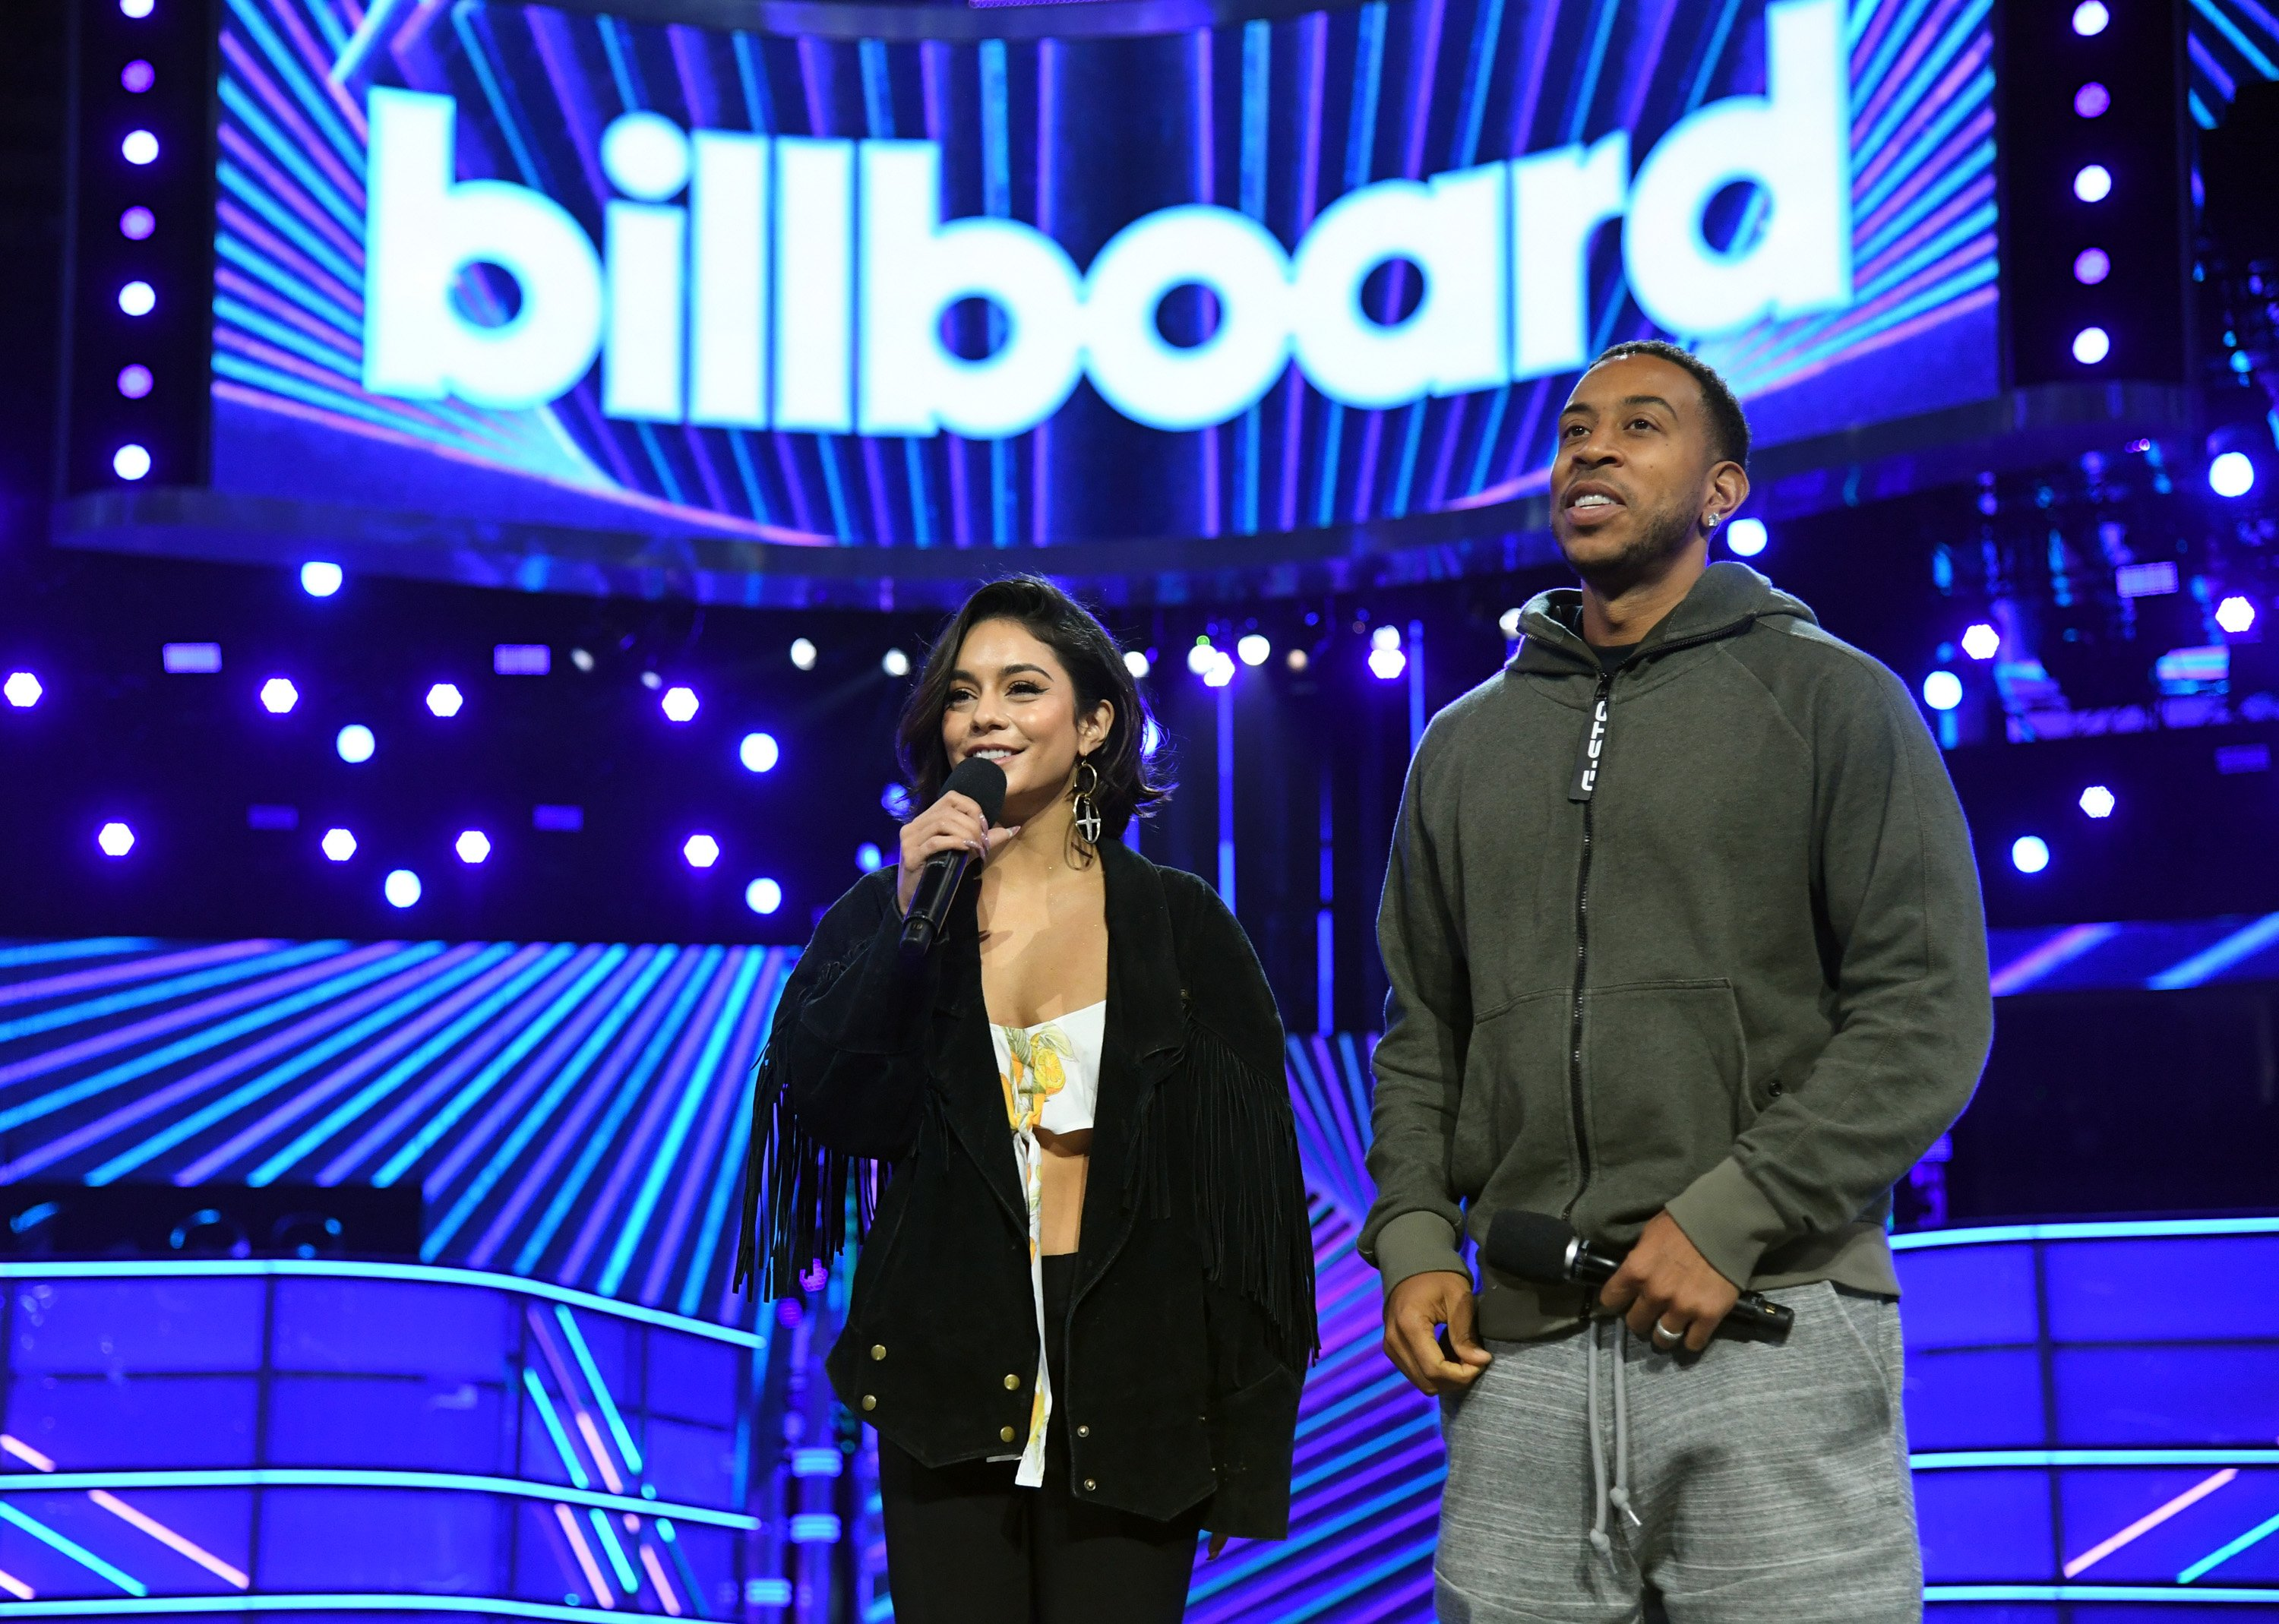 Co-hosts Vanessa Hudgens and Ludacris rehearse onstage for the 2017 Billboard Music Awards at T-Mobile Arena on May 20, 2017 in Las Vegas, Nev.